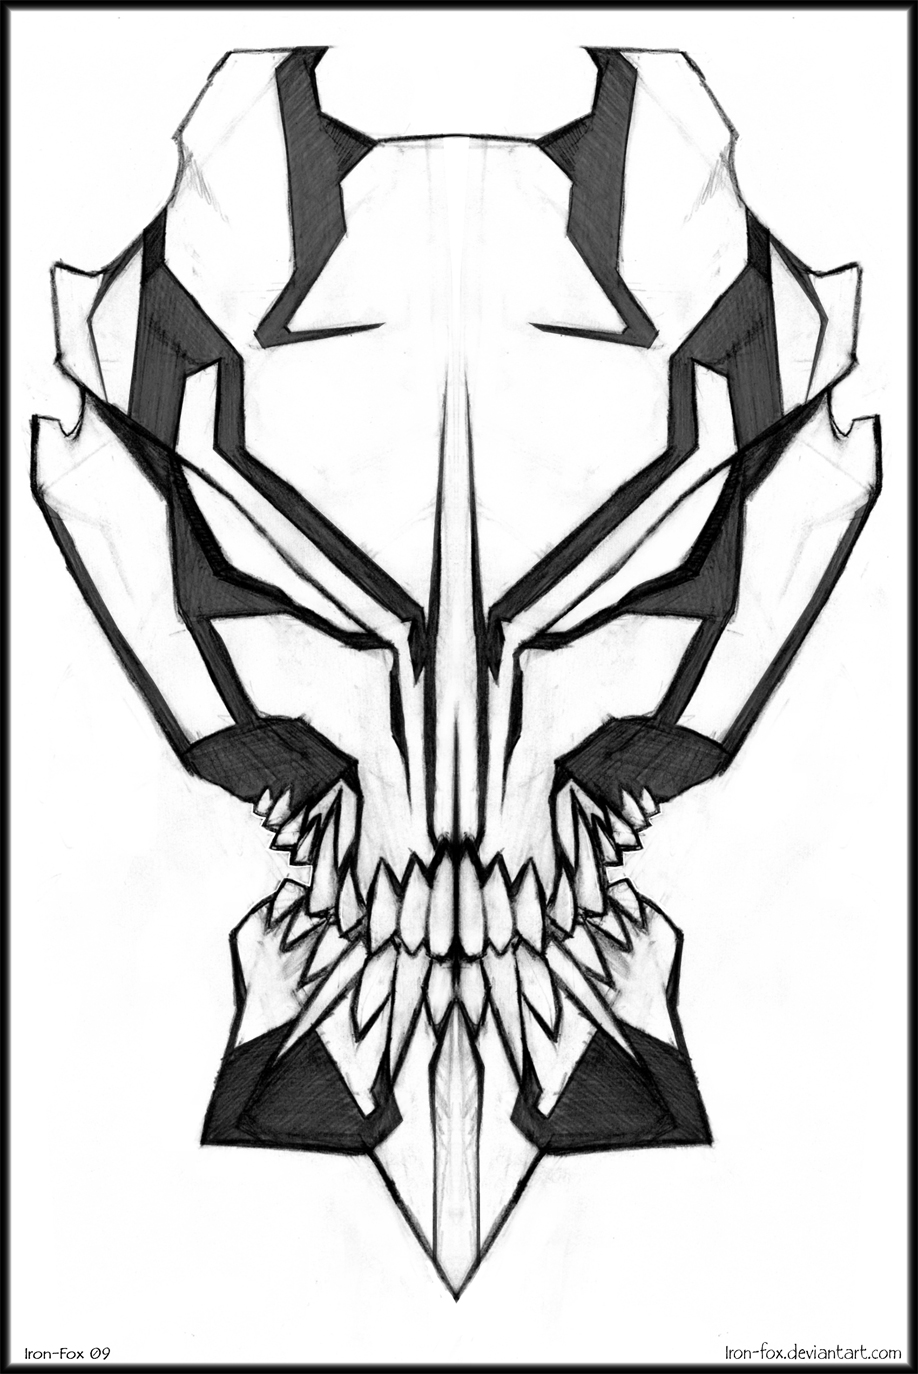 Vizard mask design by Iron-Fox on DeviantArt